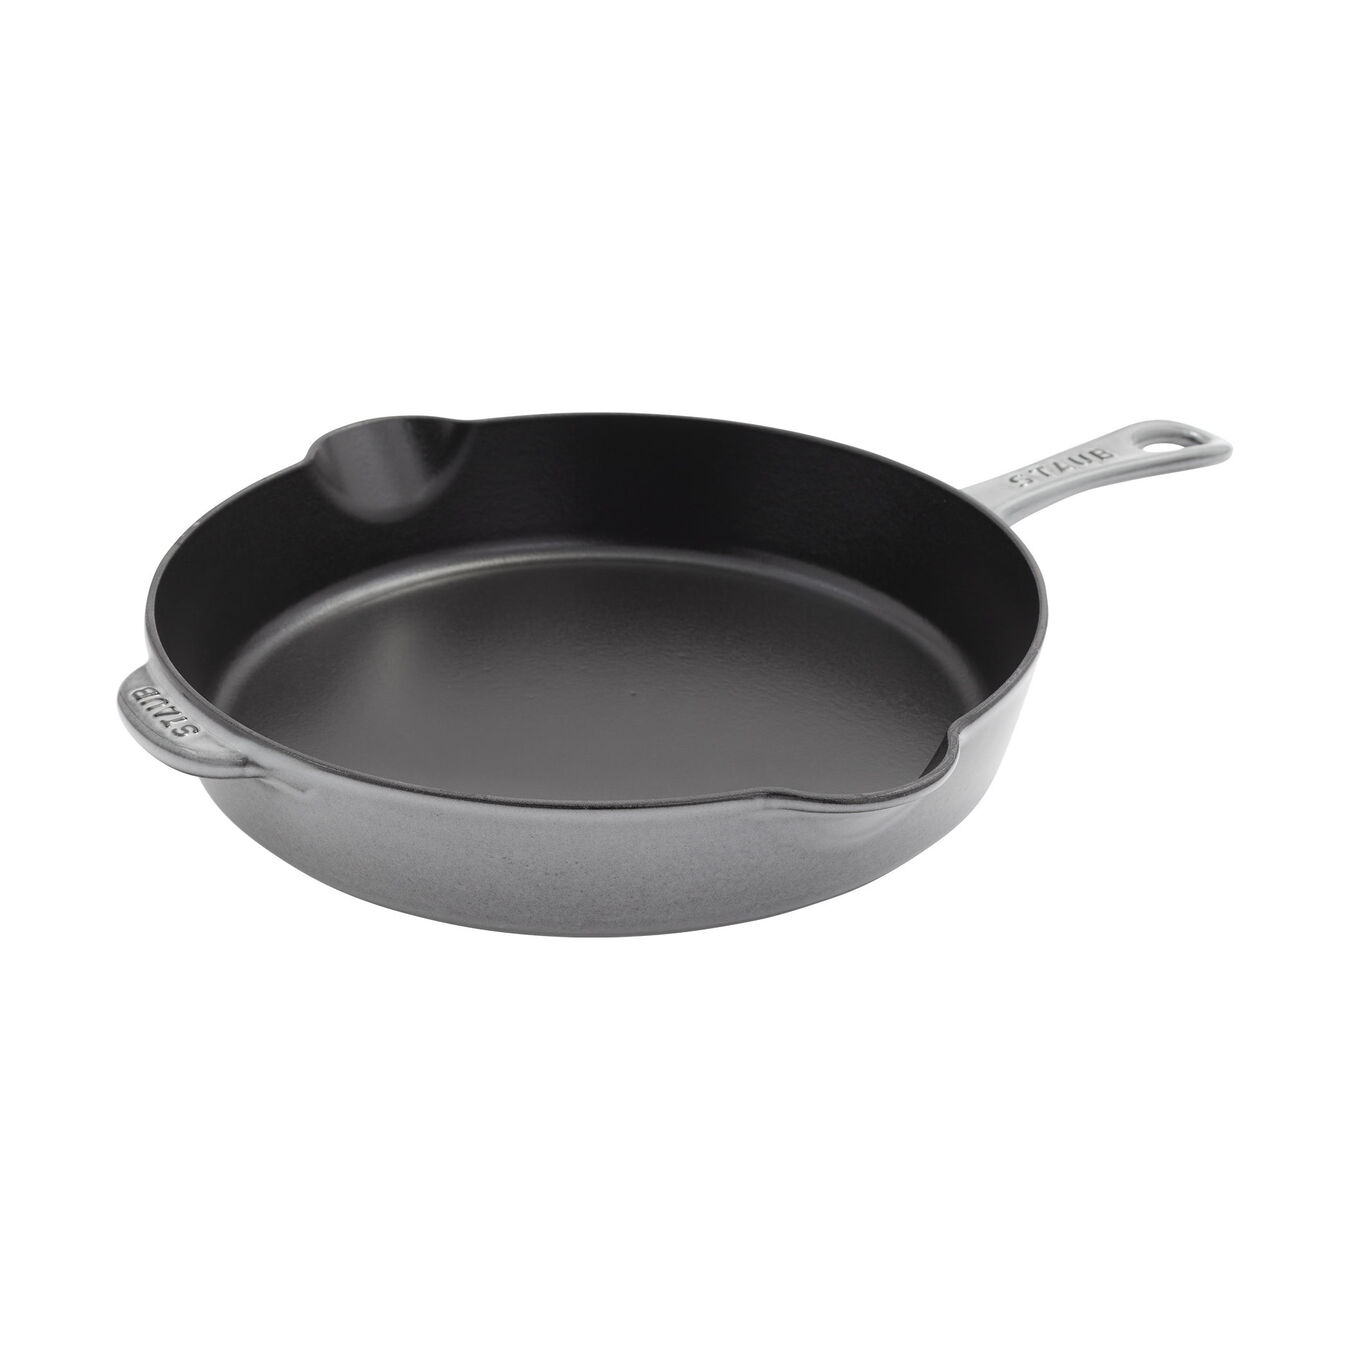 11-inch, Traditional Deep Skillet, graphite grey,,large 1